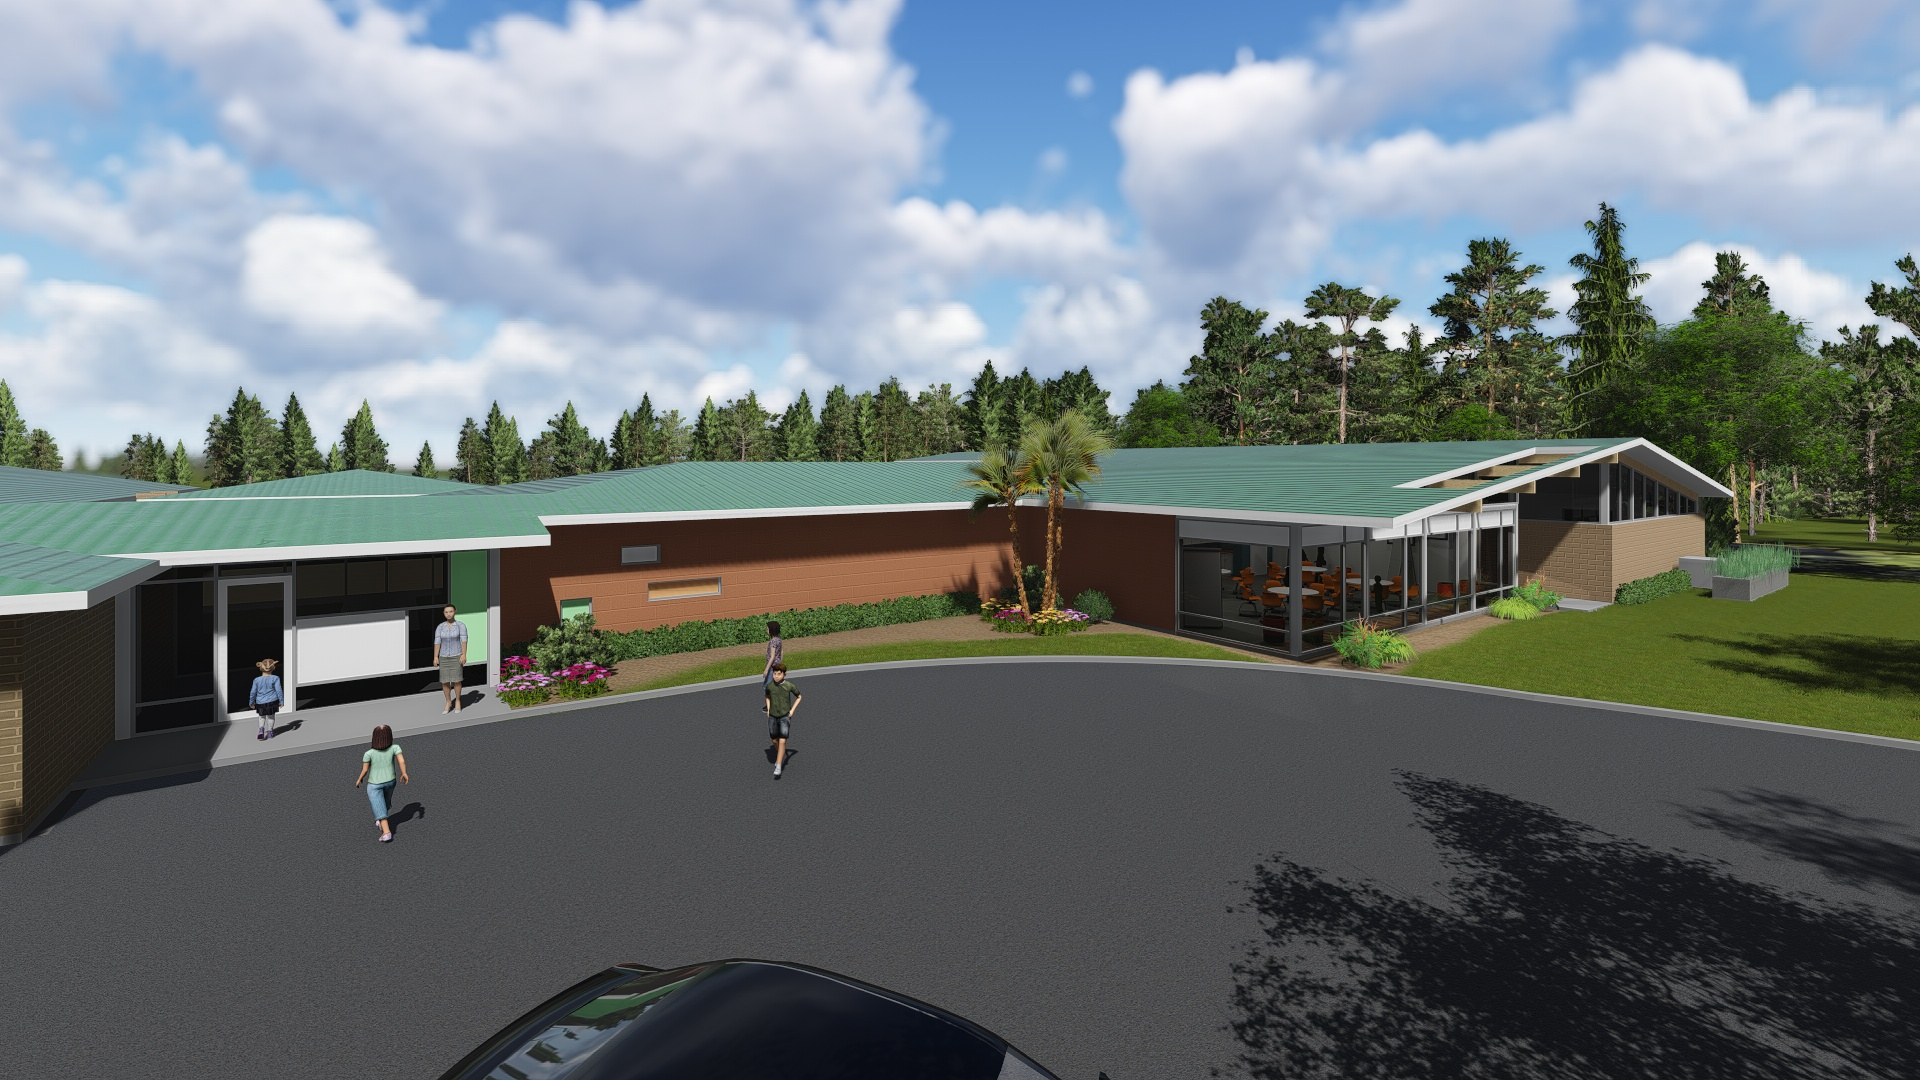 A Rendering Of Our New High School Building